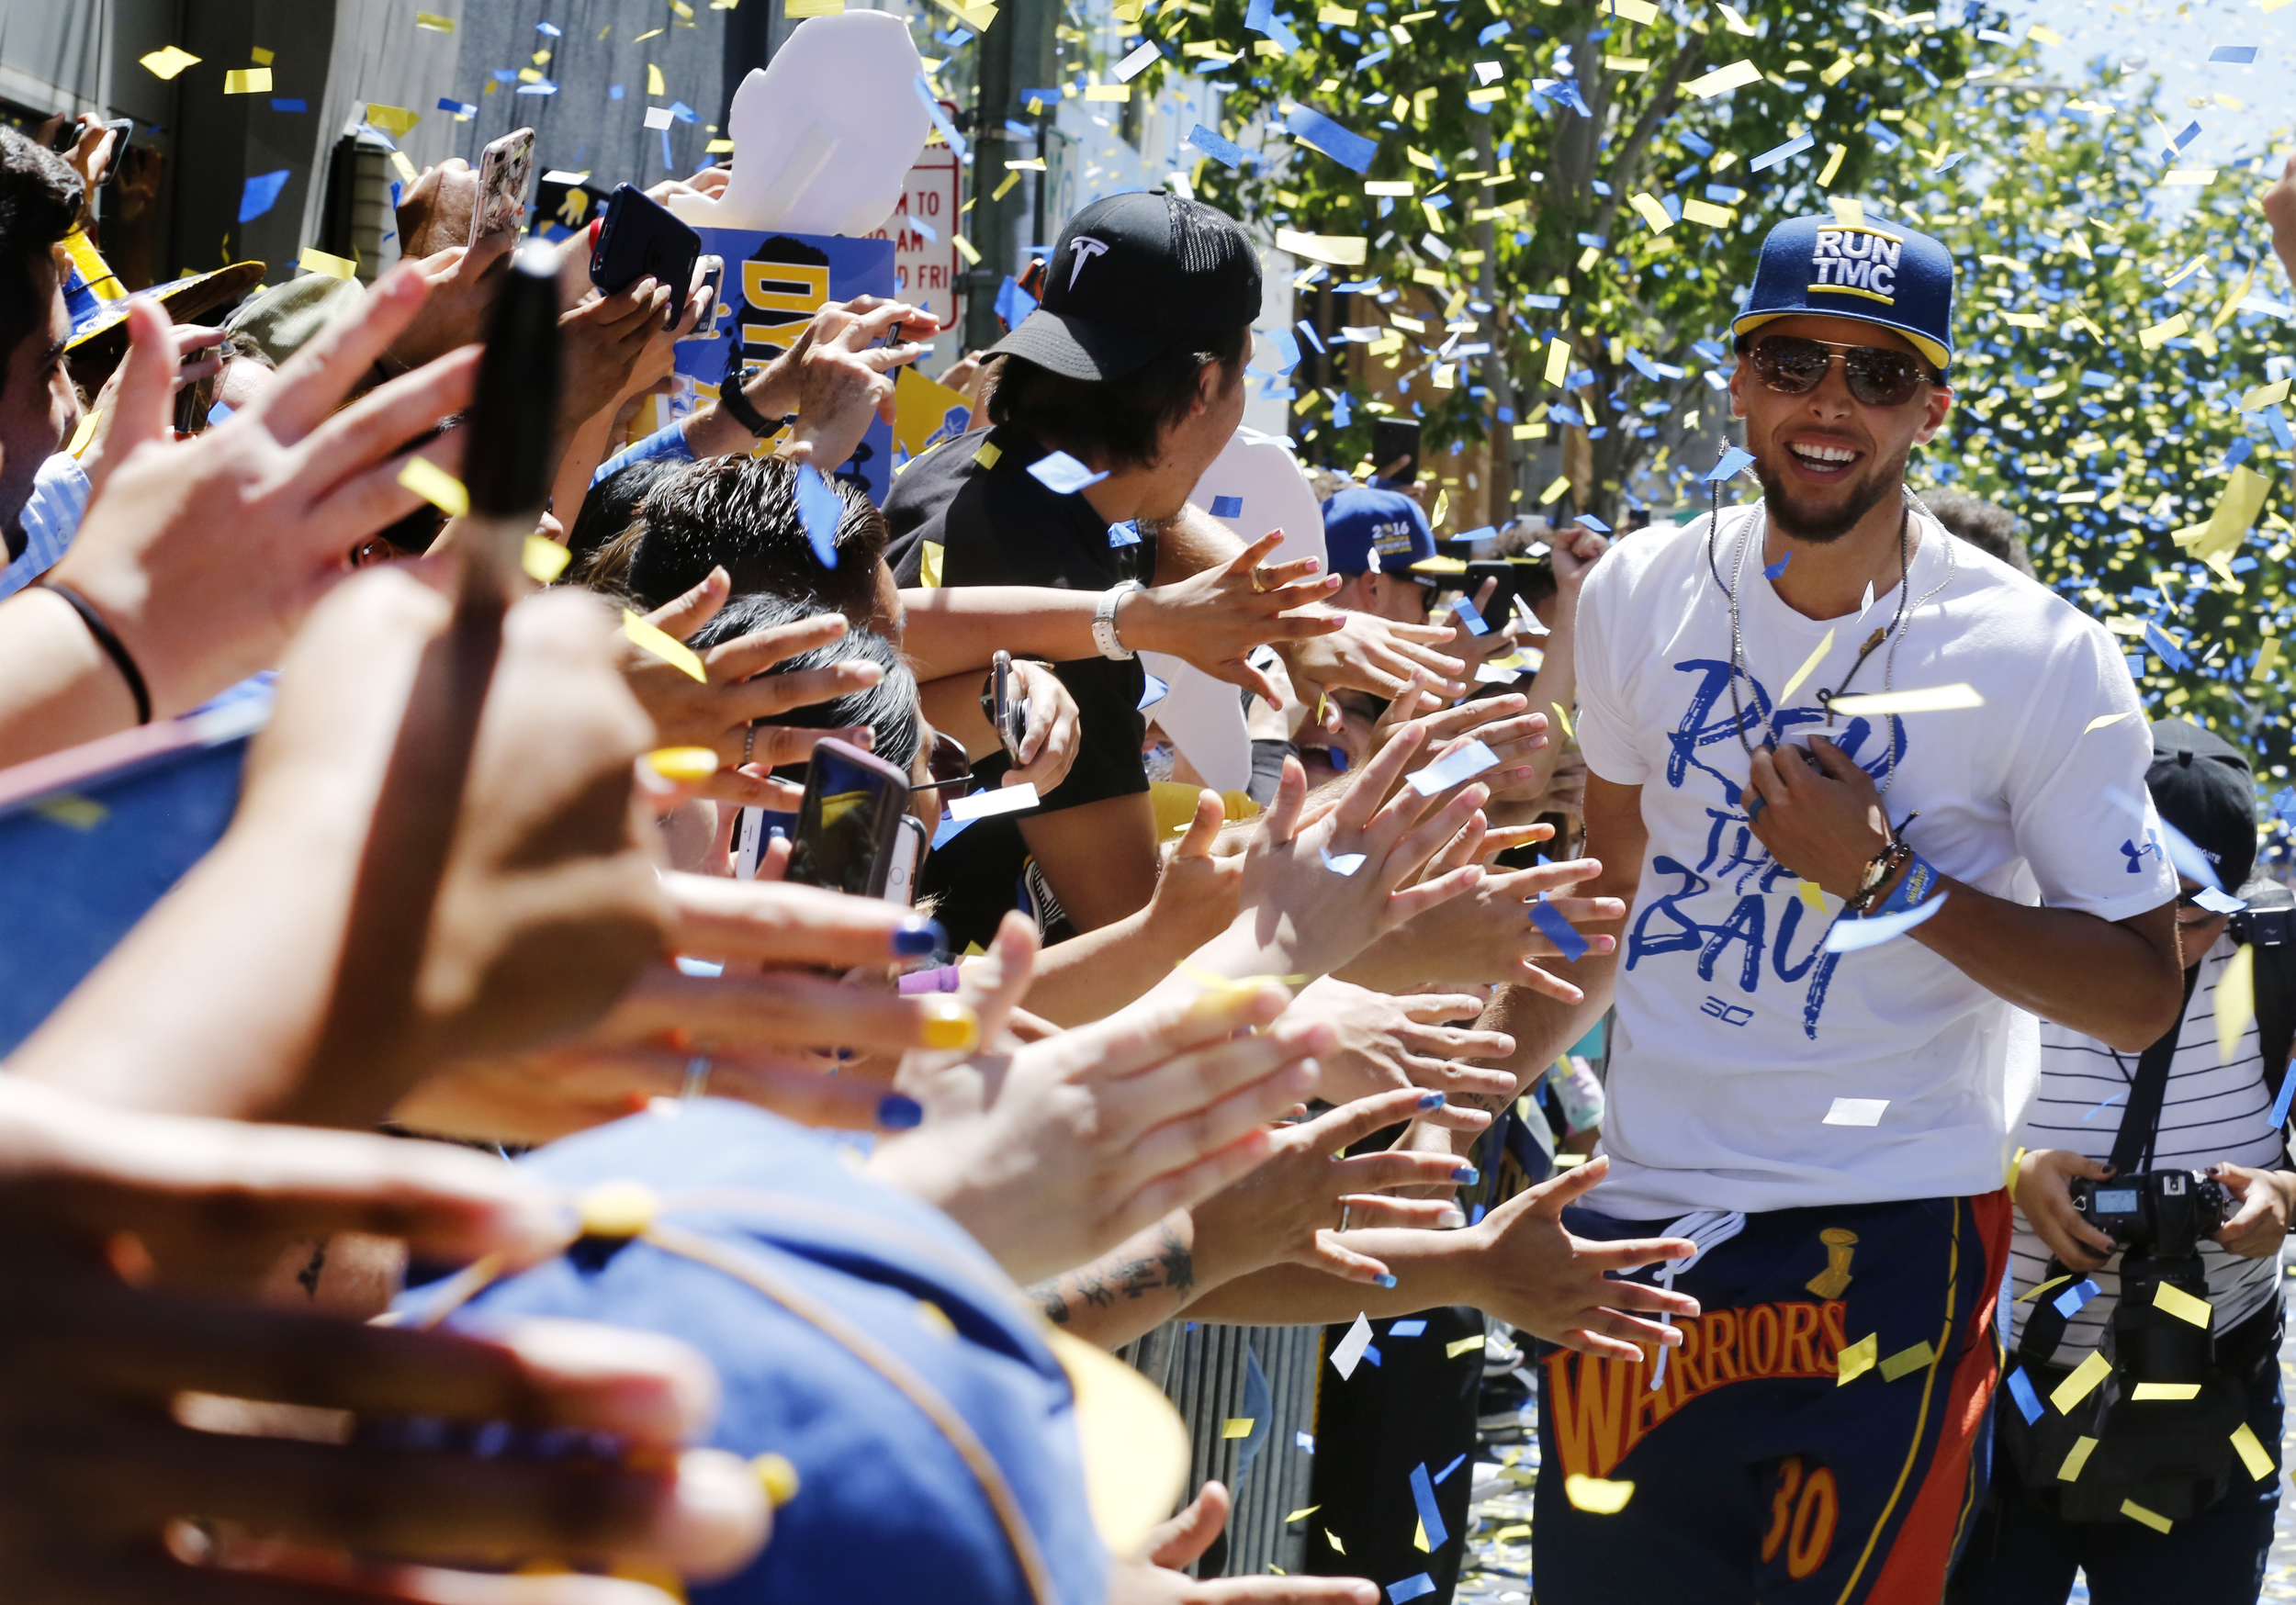 Stephen Curry makes his way down the a line of fans giving high fives during the Warriors Championship parade in Oakland Calif.